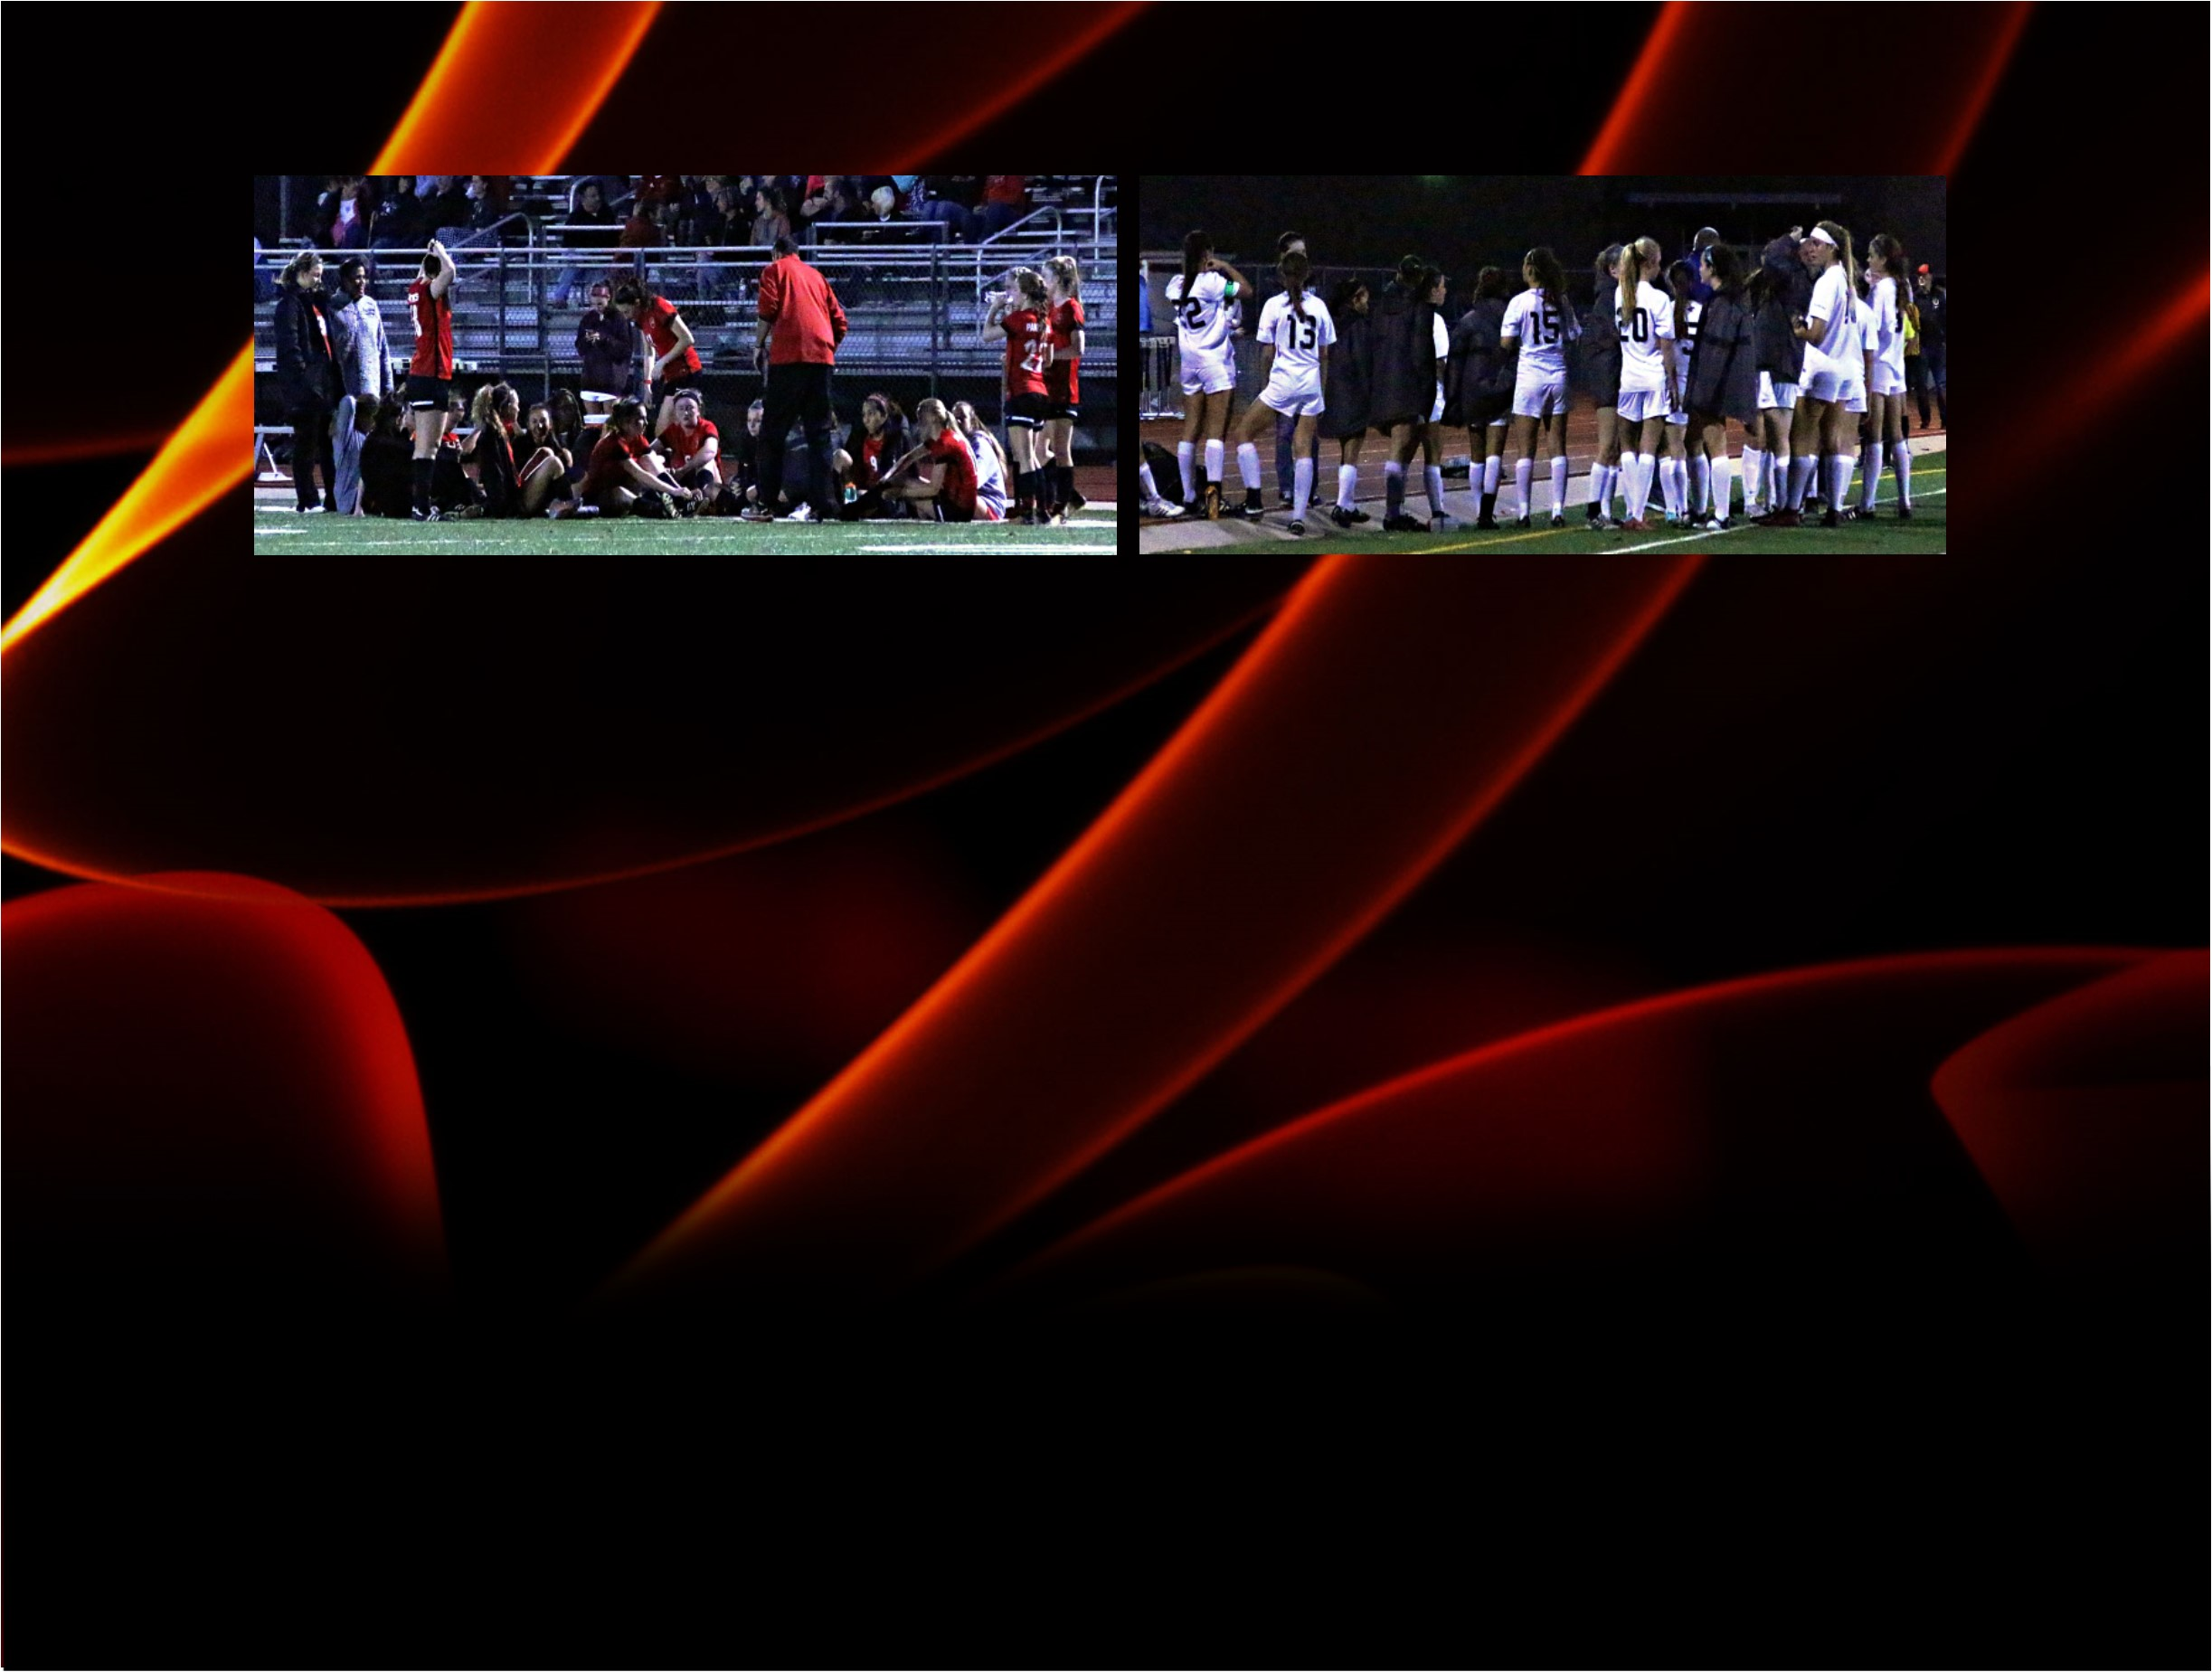 Colleyville Lady Panthers Fall to Grapevine in District Soccer Match